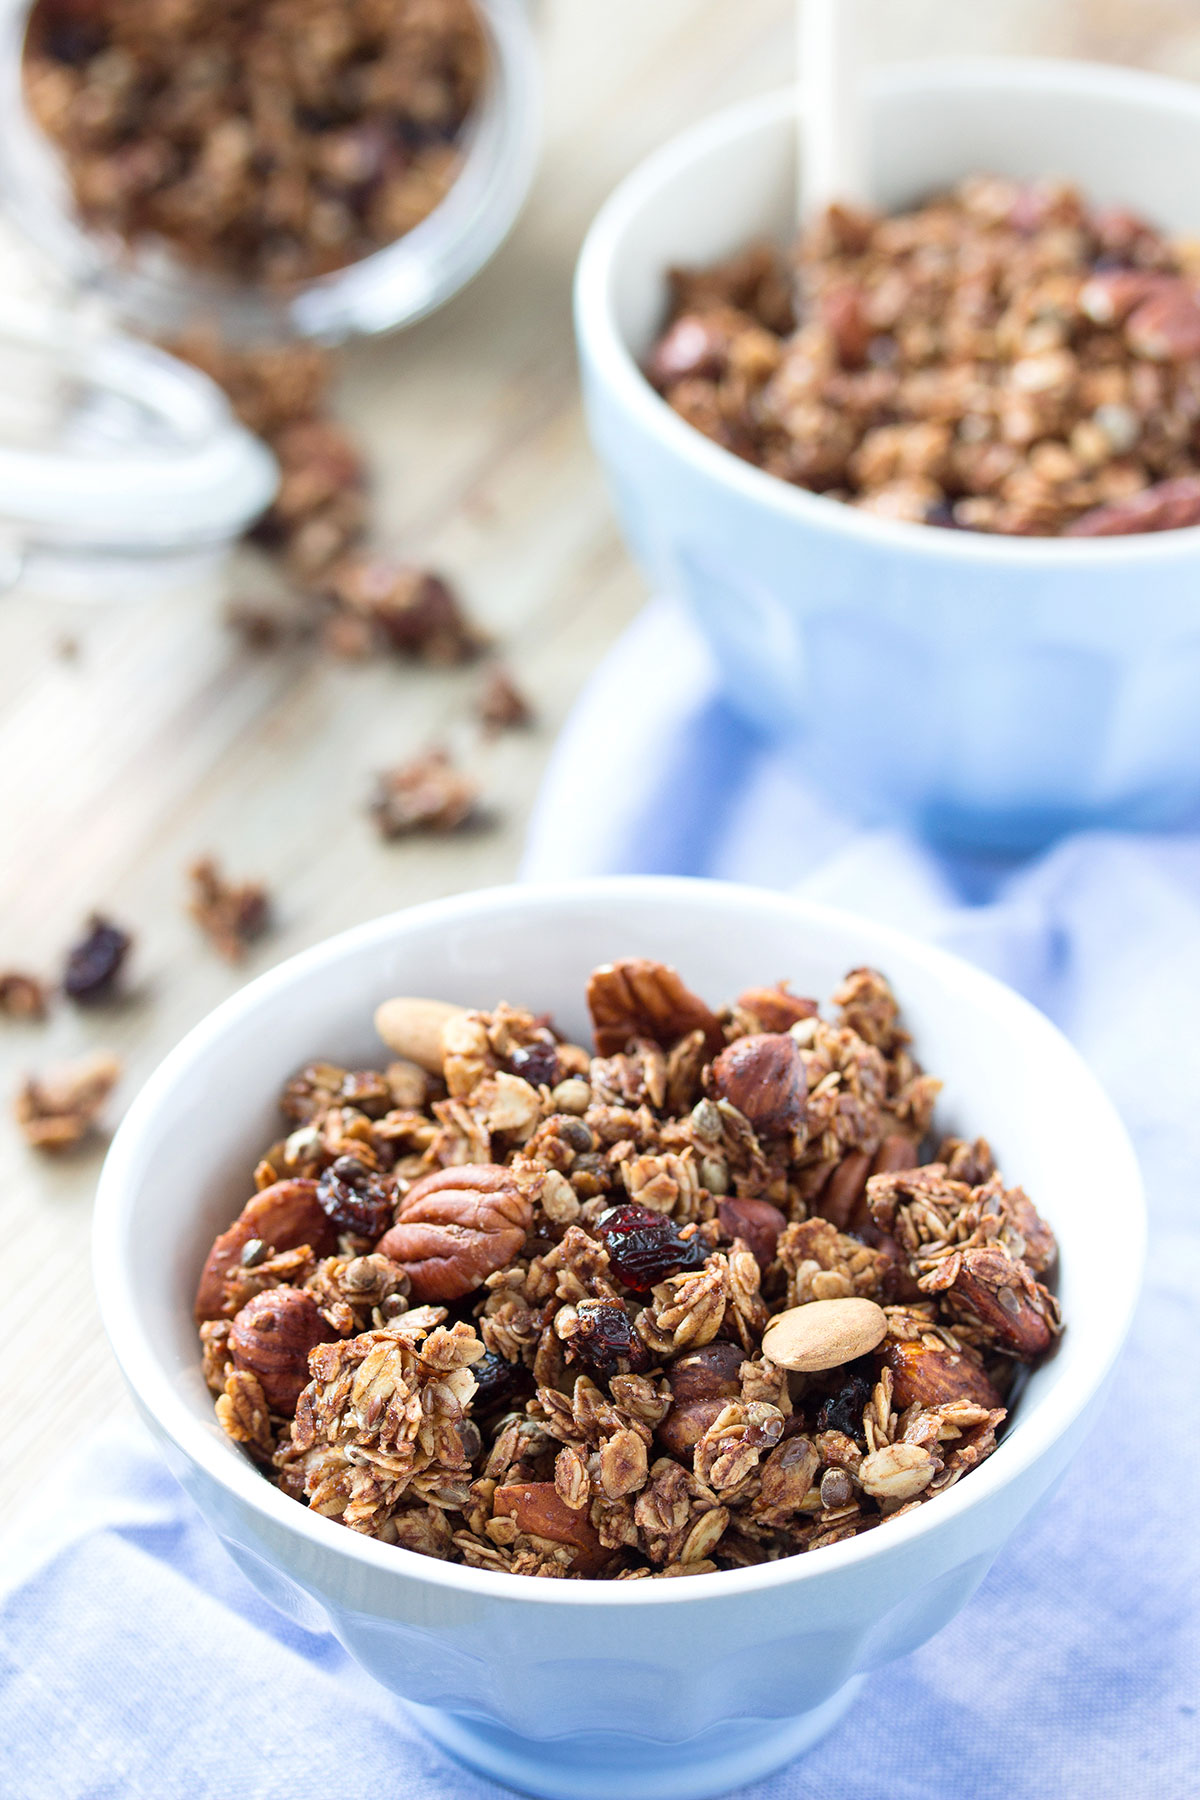 crunchy spiced nut #granola clusters #autumn granola recipe with oats buckwheat - vegan-glutenfree ricetta granola croccante cacao cannella nocciole noci mandorle granola autunnale #vegan #senzaglutine